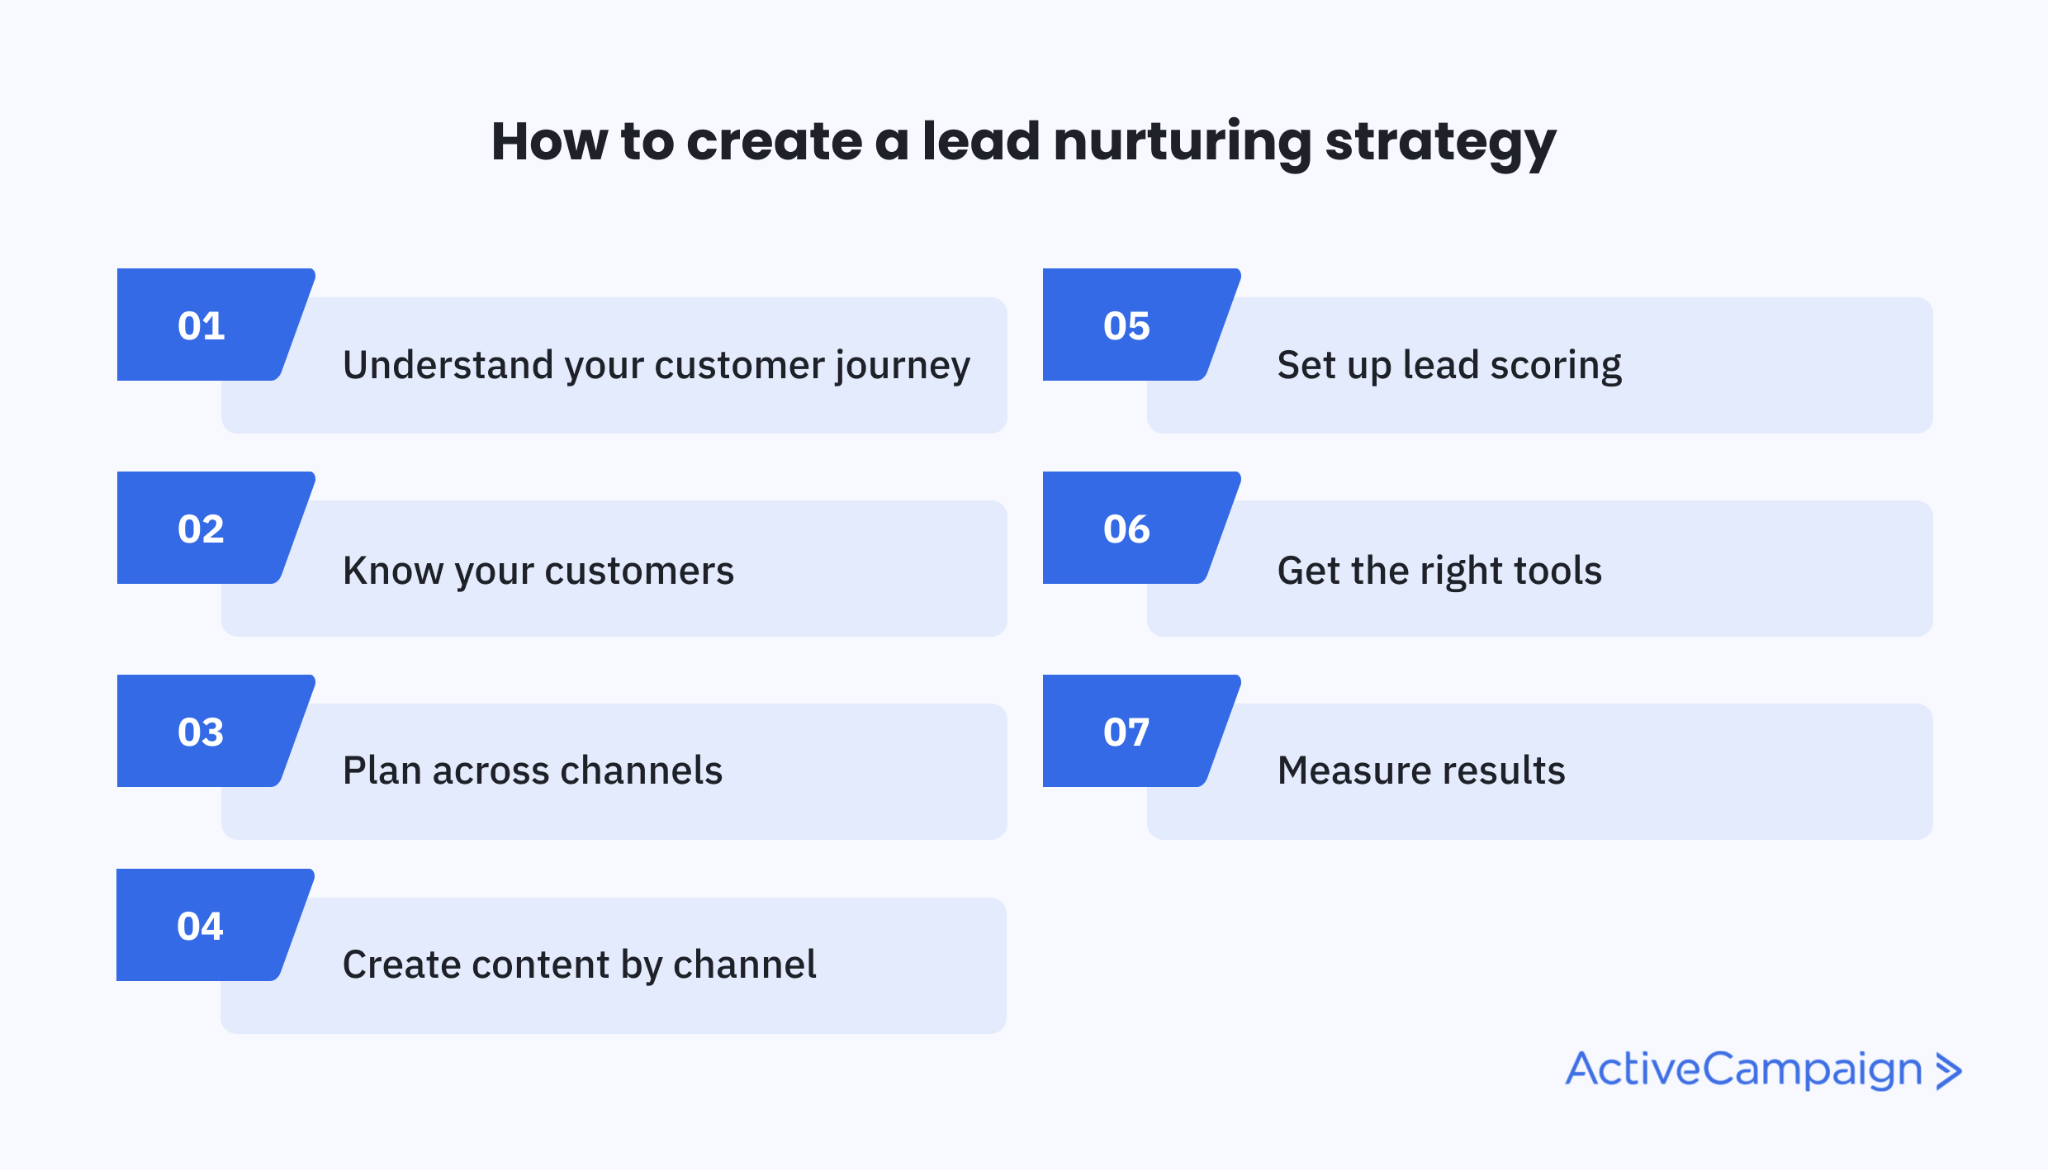 7 steps to creating a lead nurturing strategy